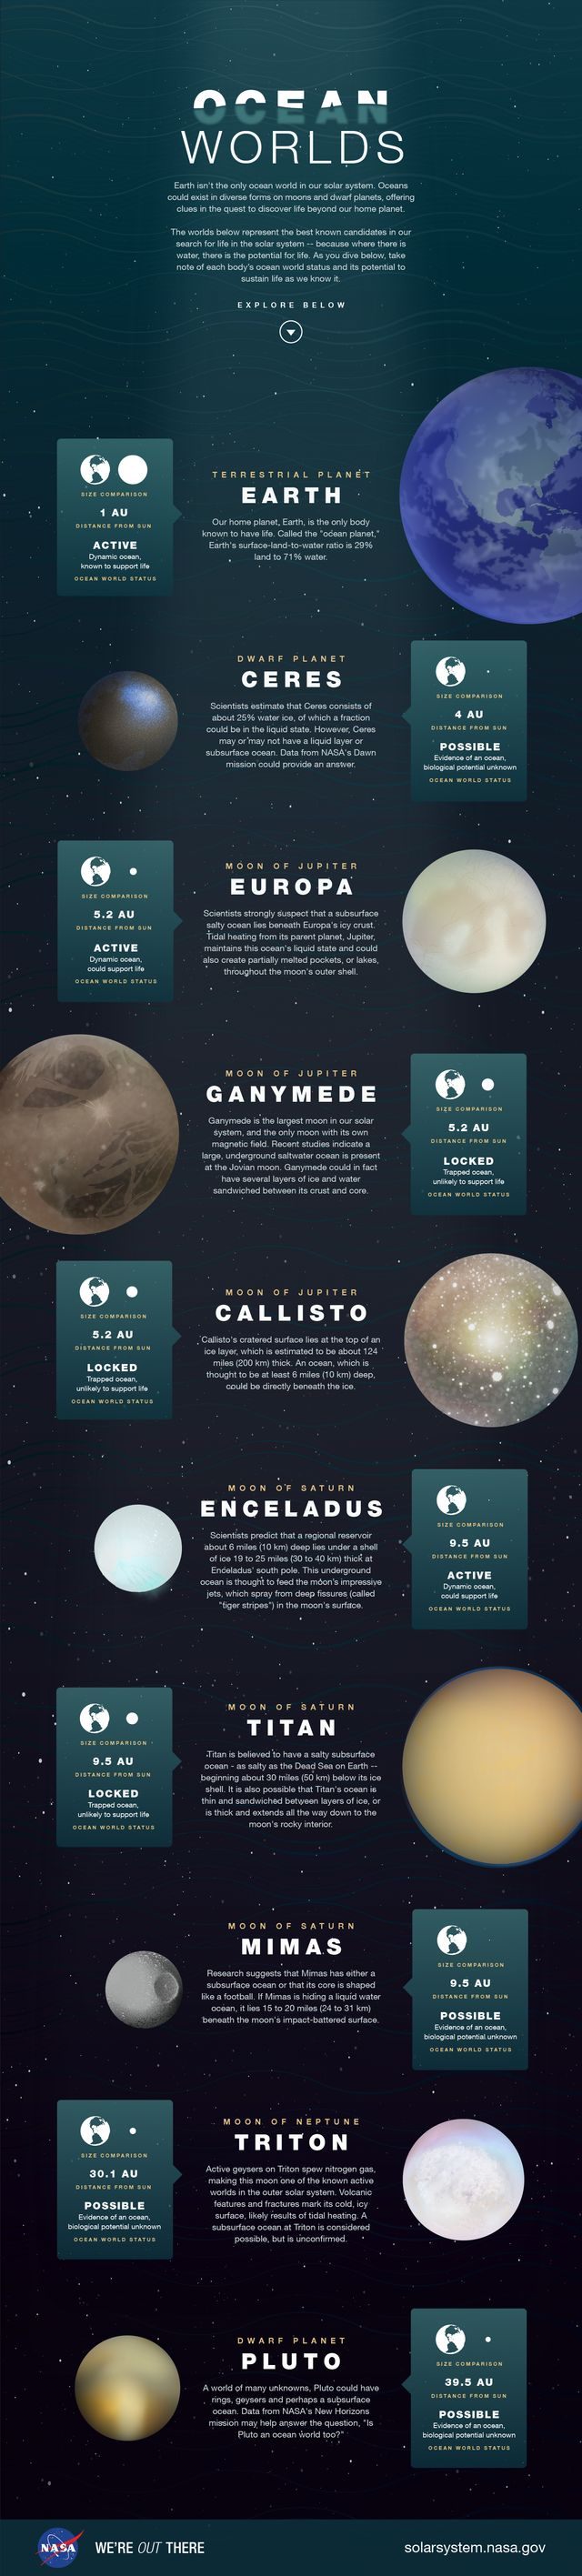 Ocean Worlds in Our Solar System - NASA JPL Infographic